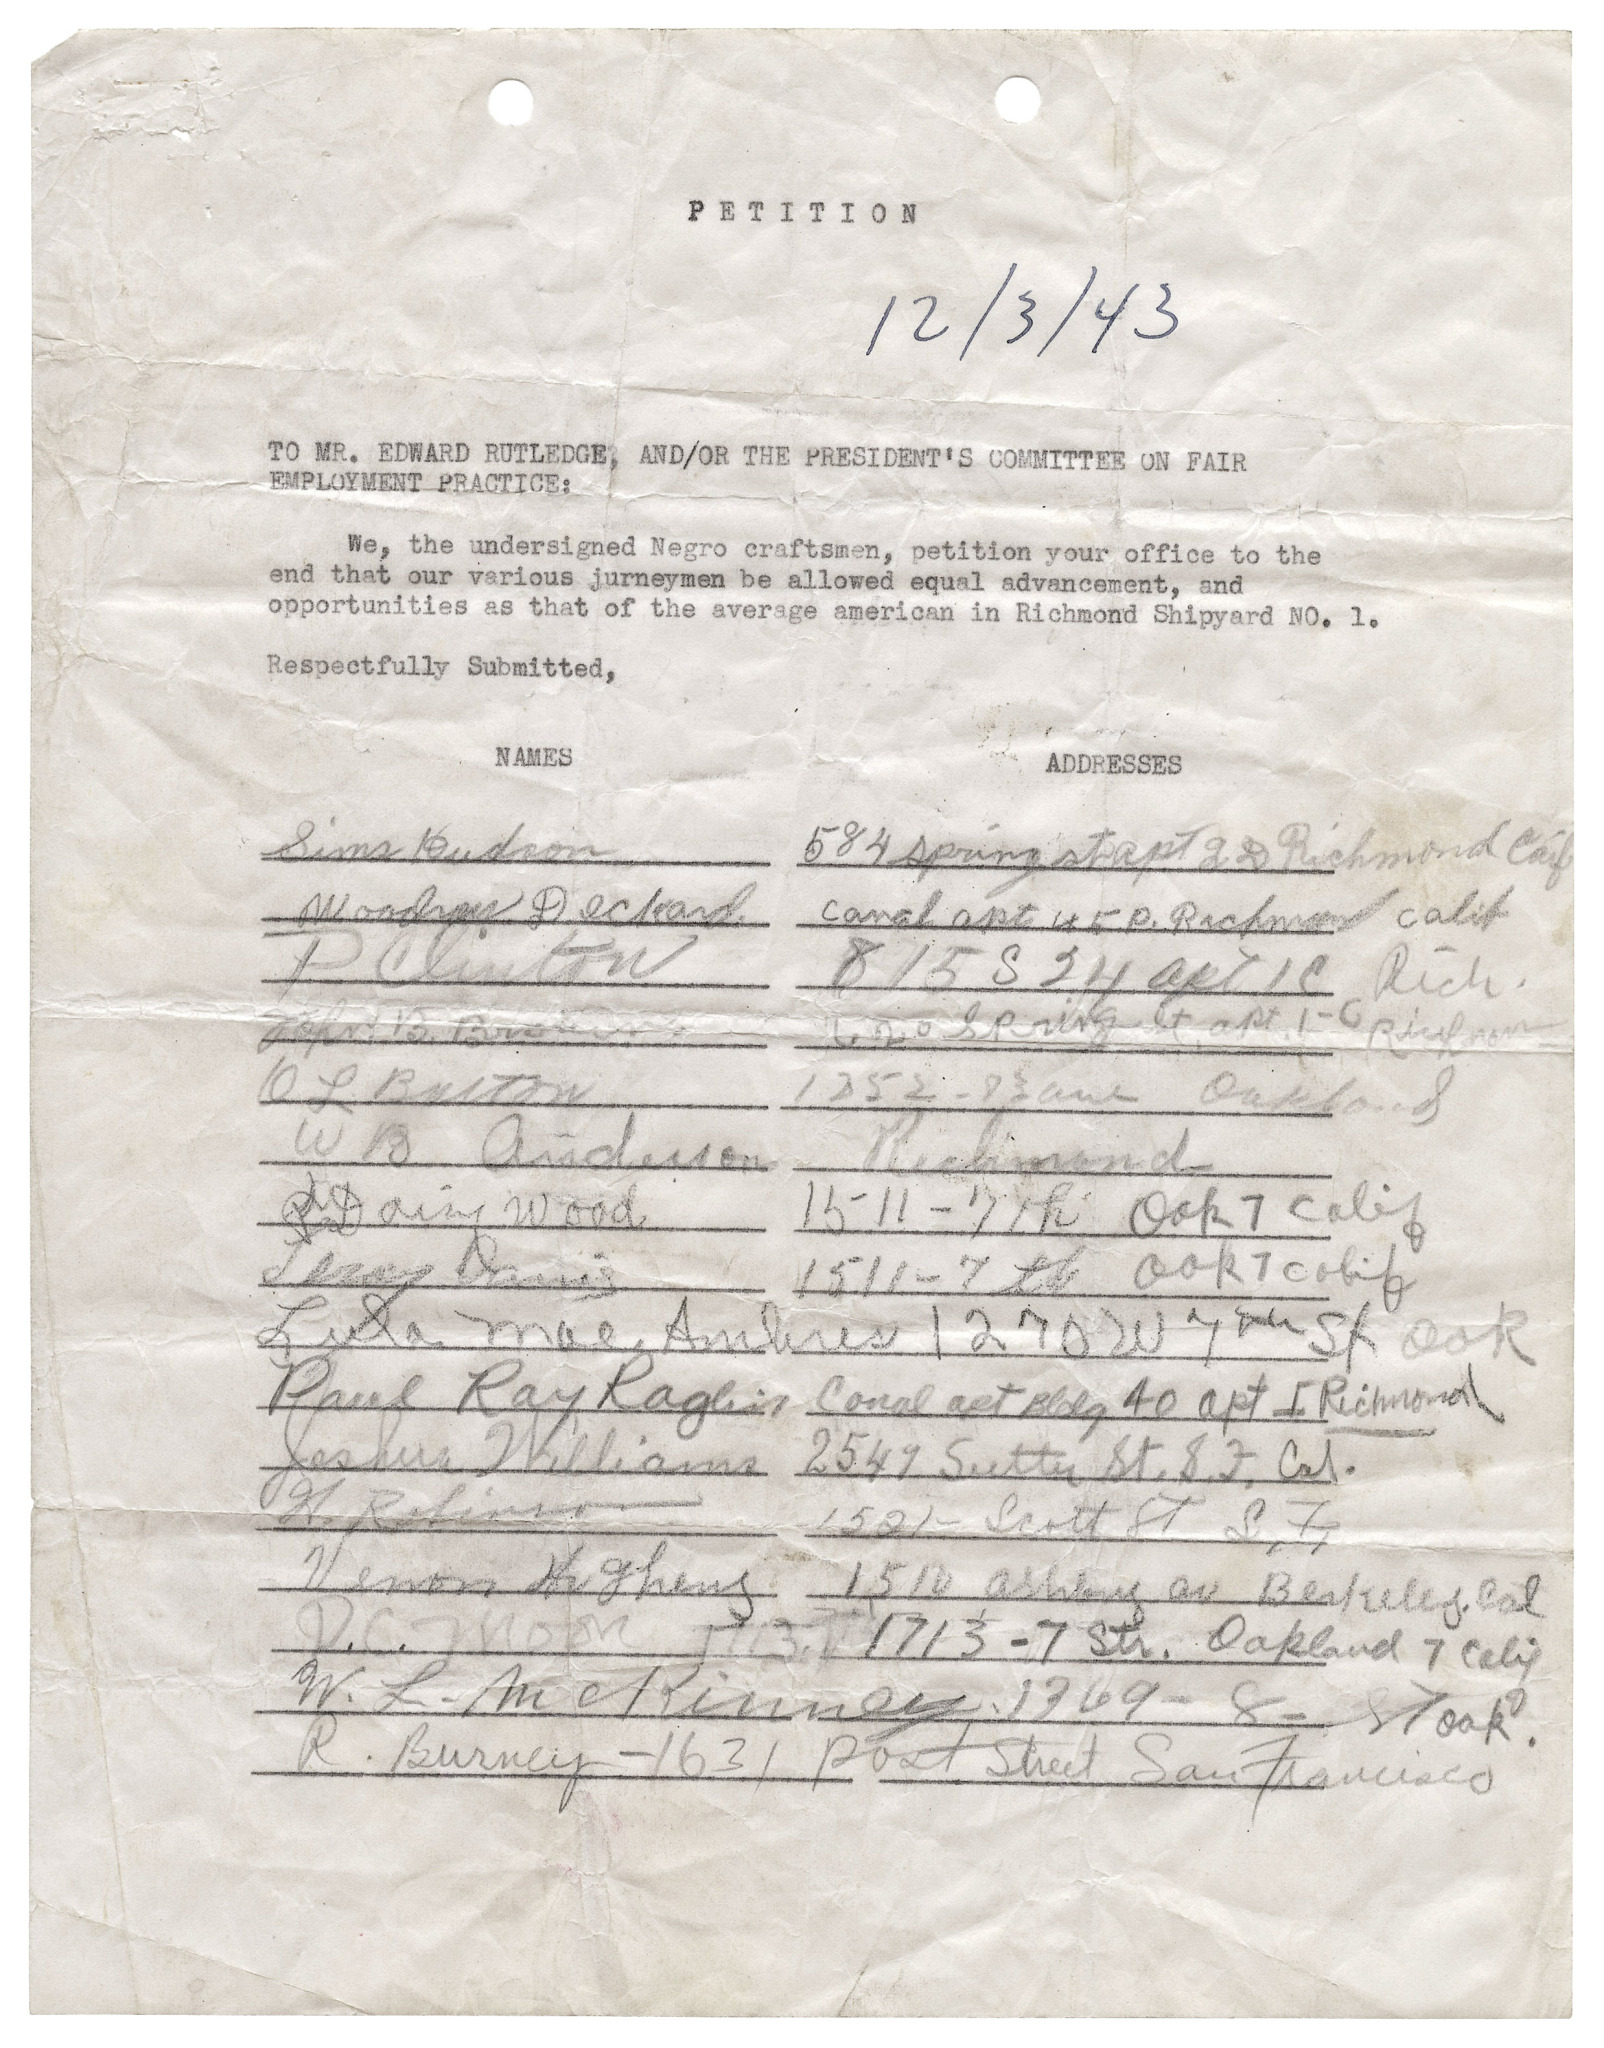 Petition from African Americans workers